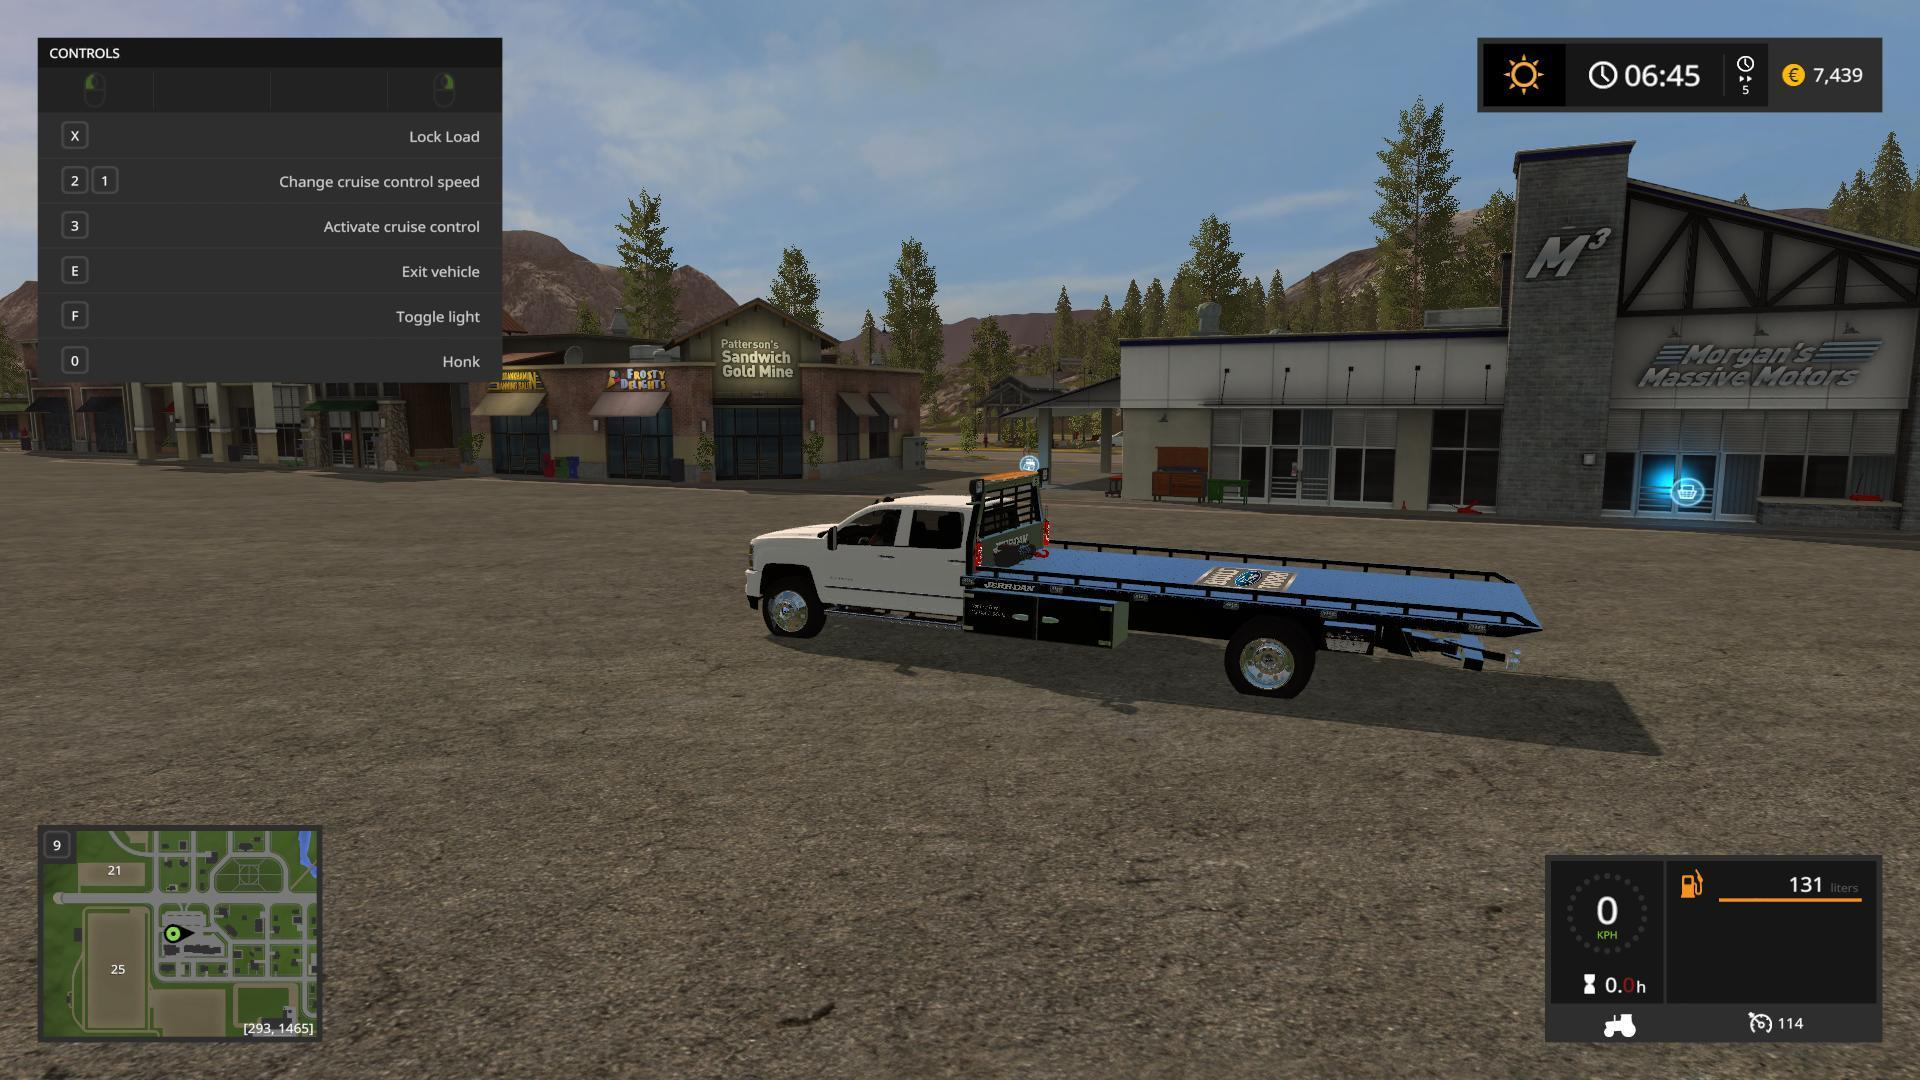 Chevy » GamesMods.net - FS19, FS17, ETS 2 mods